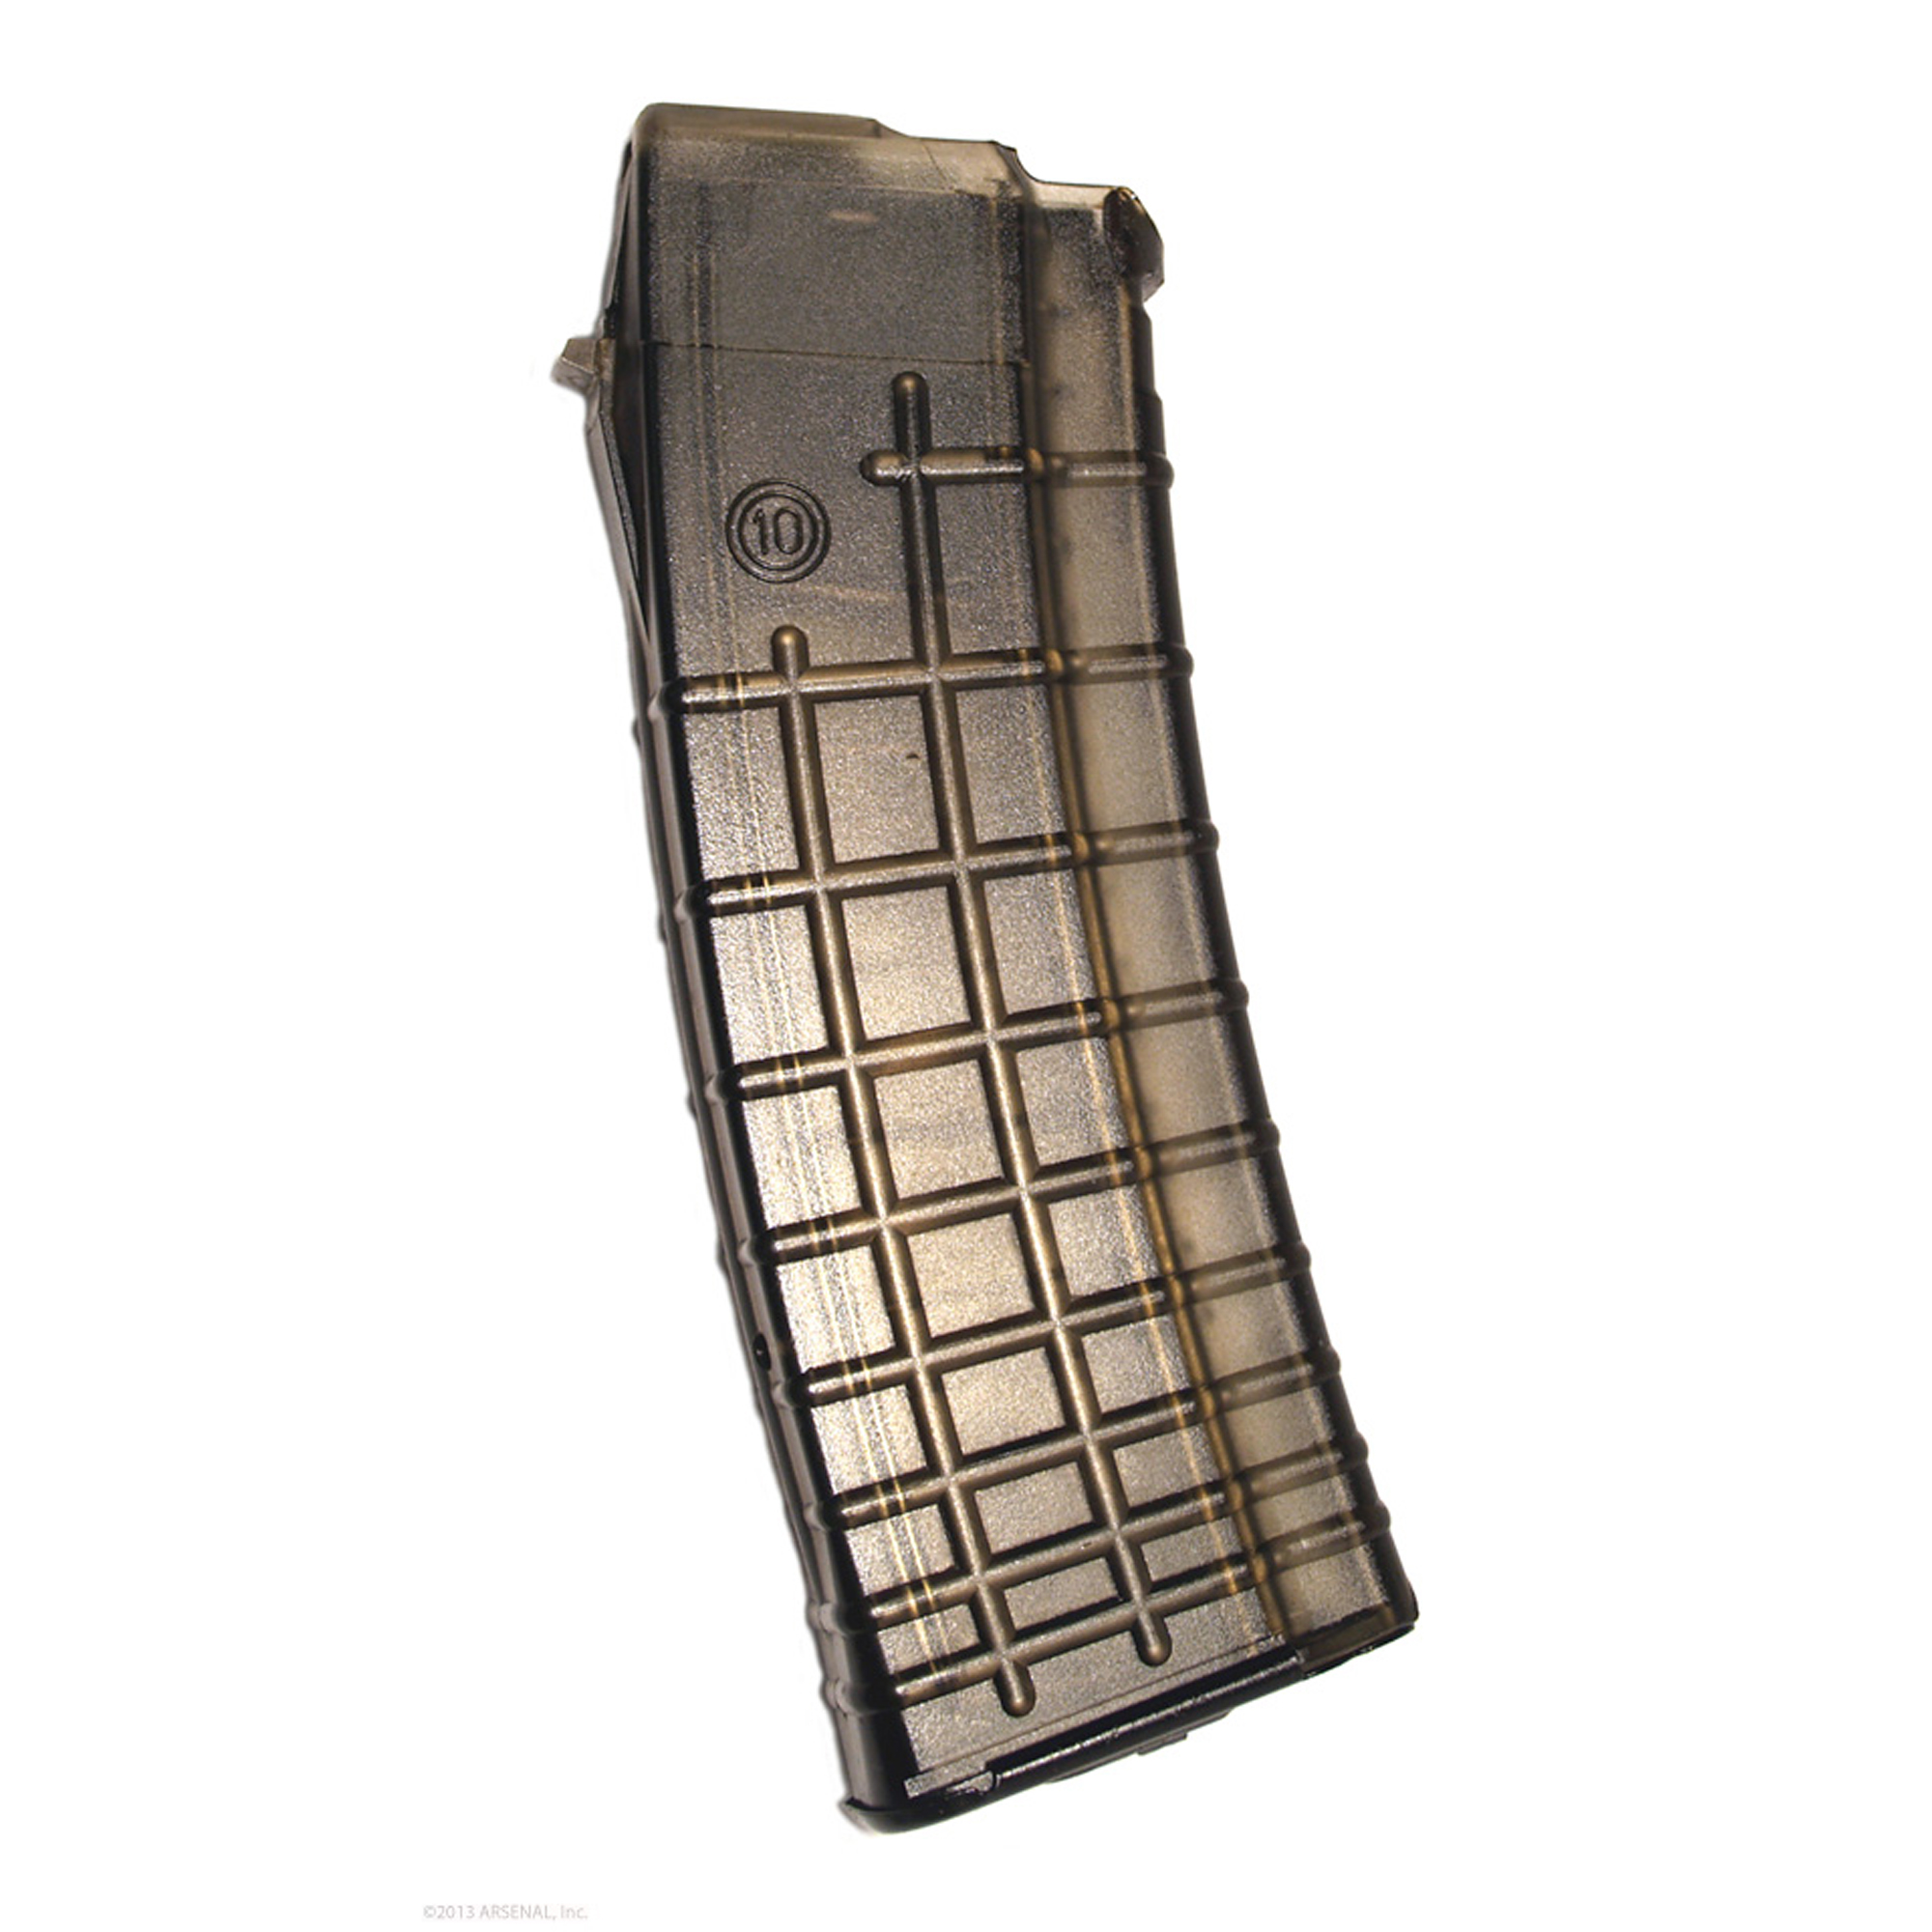 Arsenal makes the best AK pattern magazines on the market today! They feature reinforced feed lips that increase strength and durability. Wear resistant lugs are machined to factory specs to guarantee perfect fit and function.